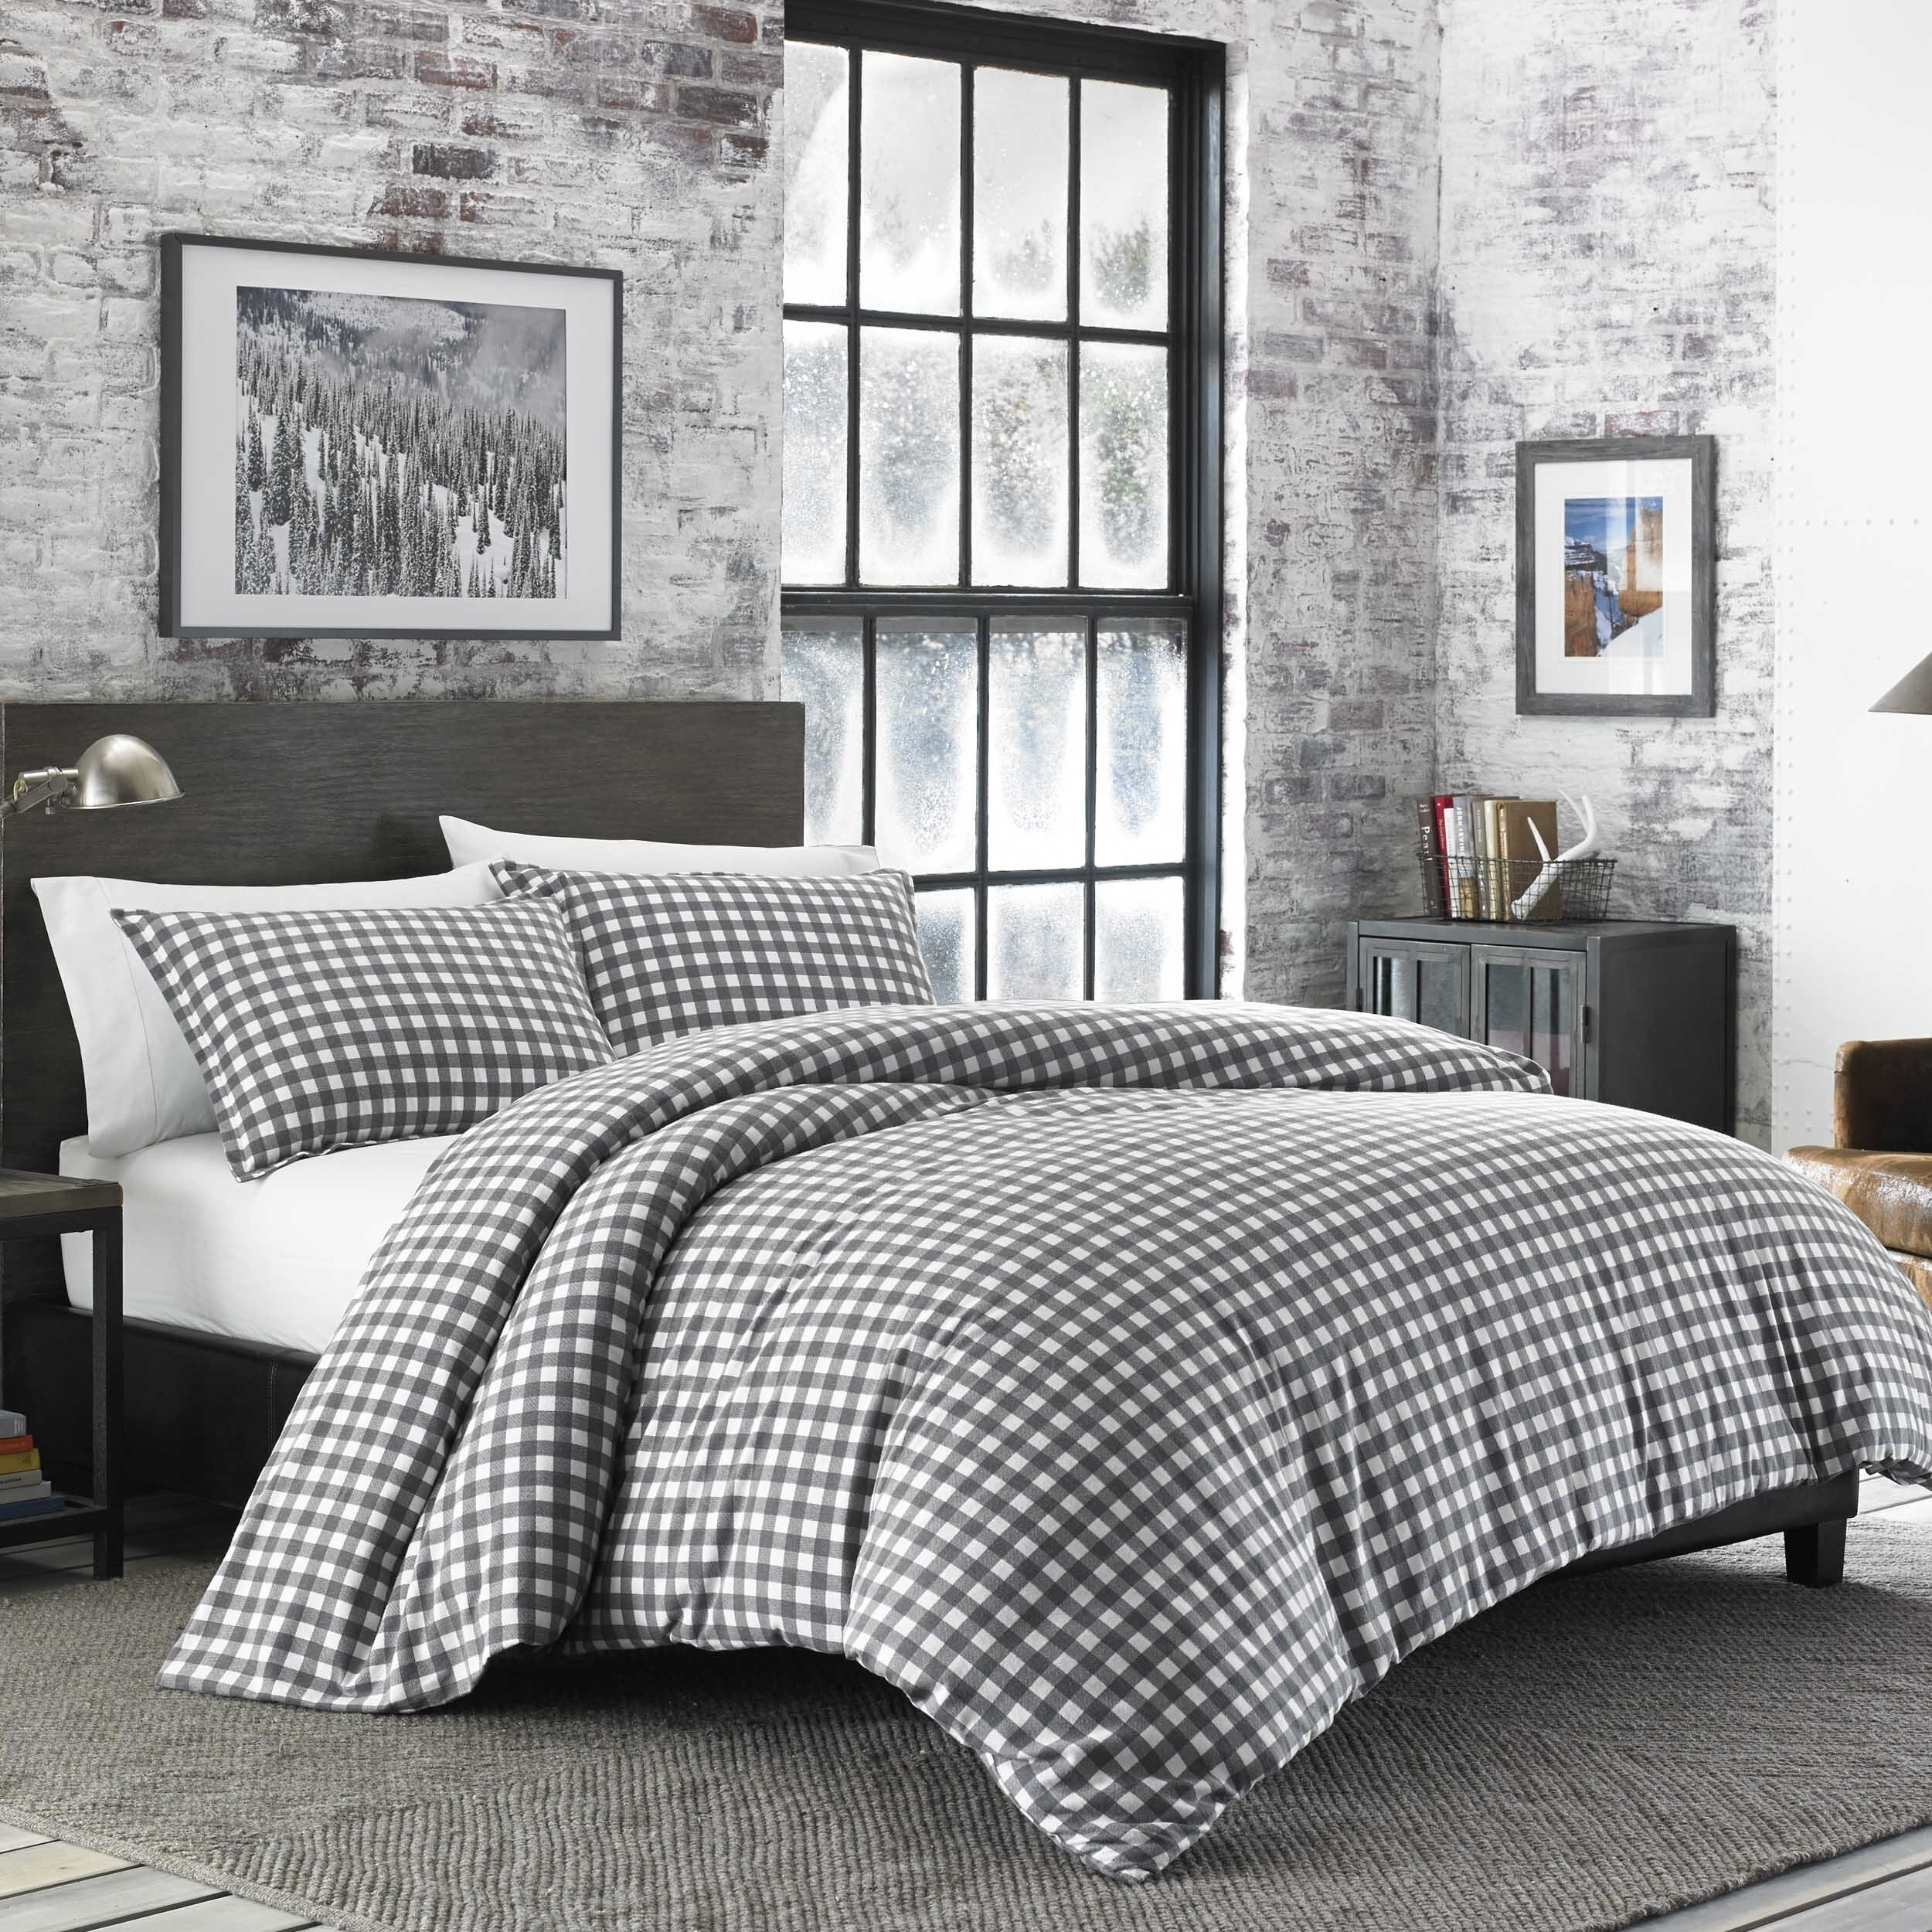 woolrich over sets set piece bath overstock plaid hadley on free product mini shipping multi bcbc comforter orders bedding rustic